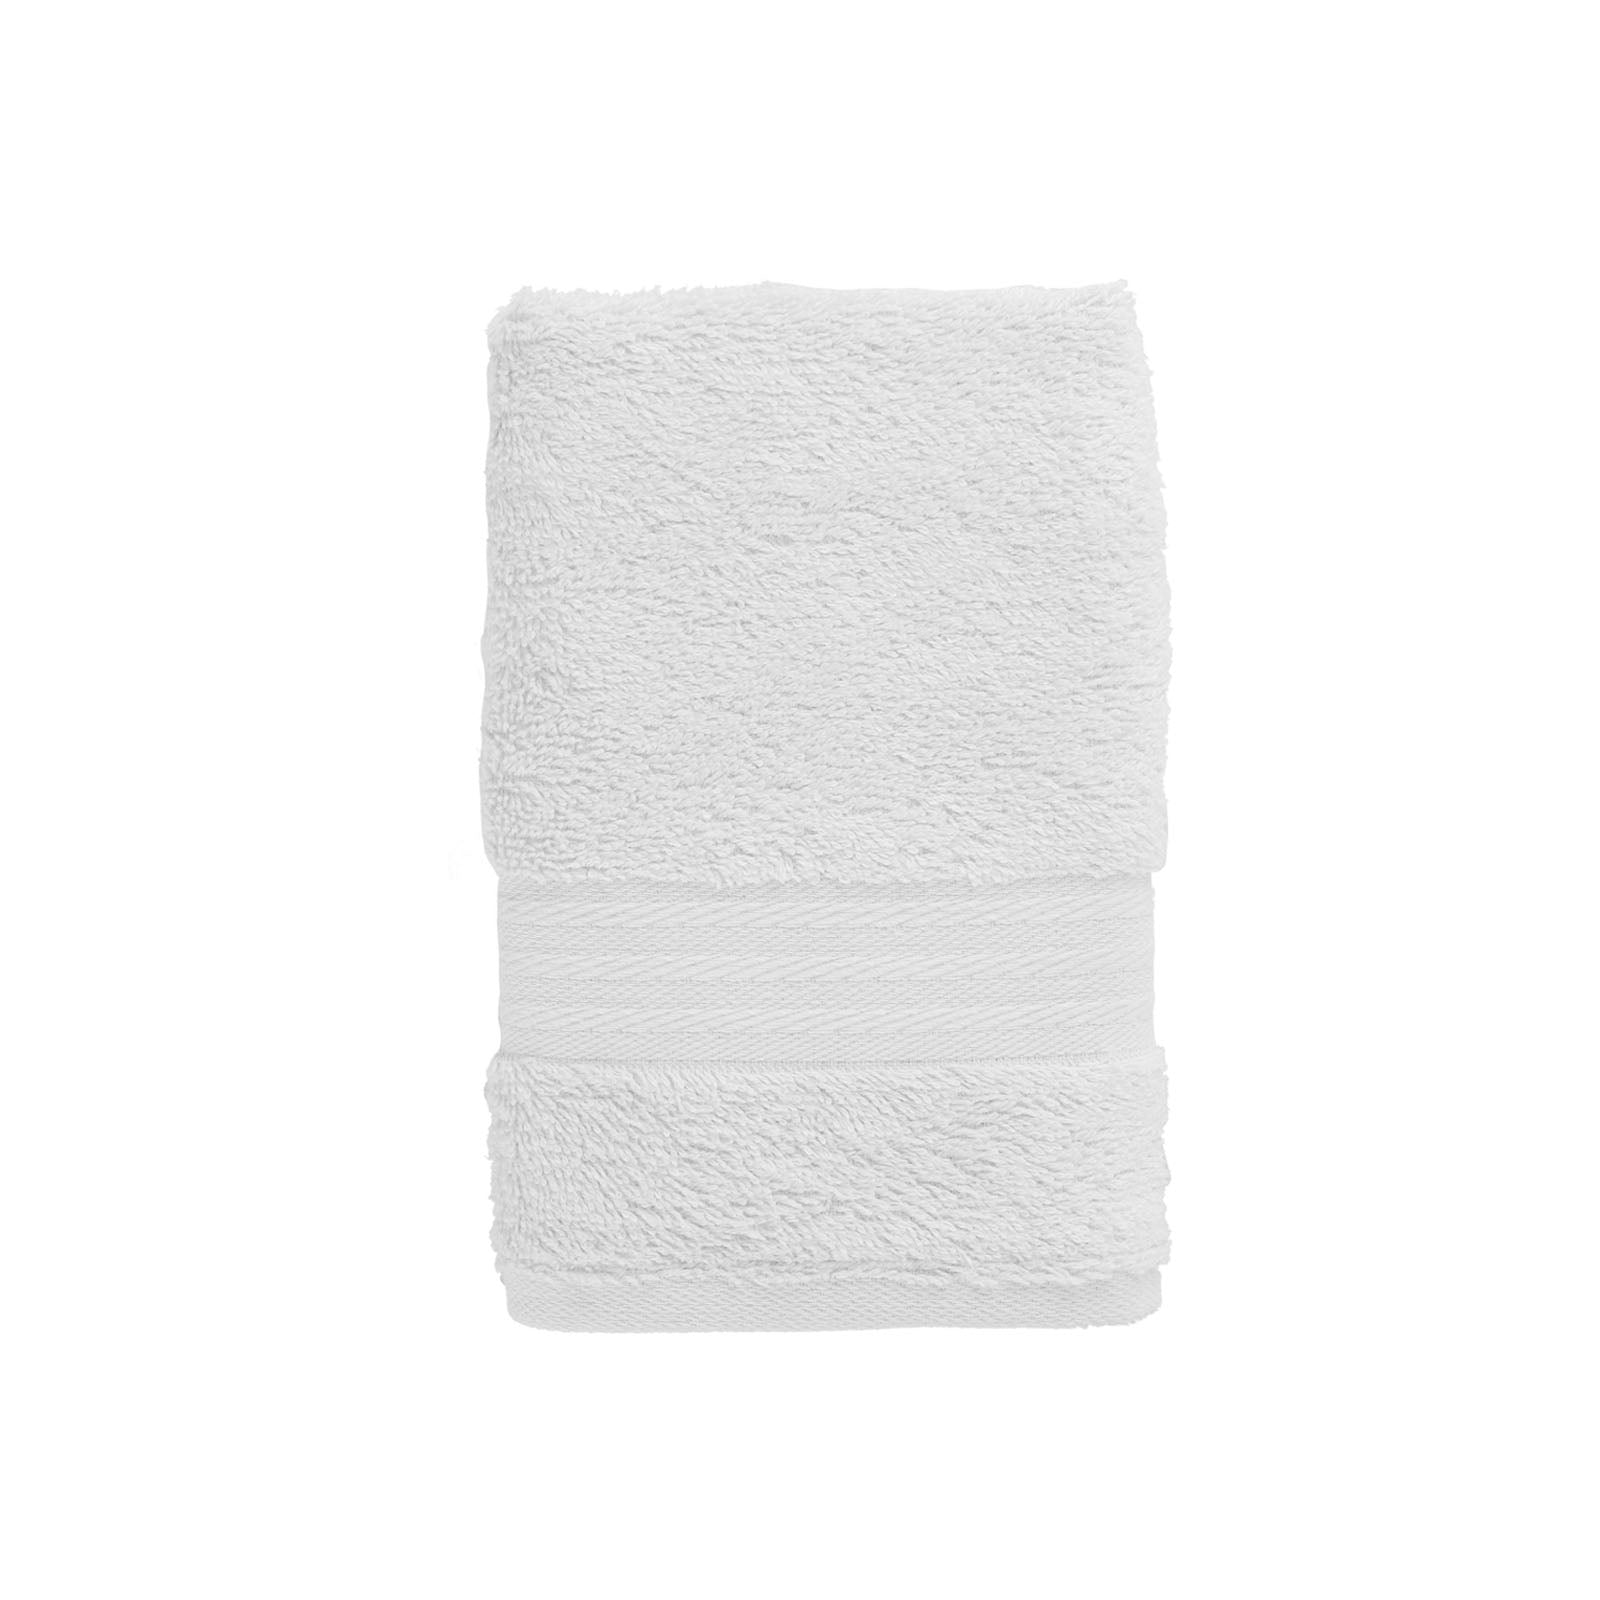 30X50 PURE SOFT towel   200.05.01.0234 - ebarza